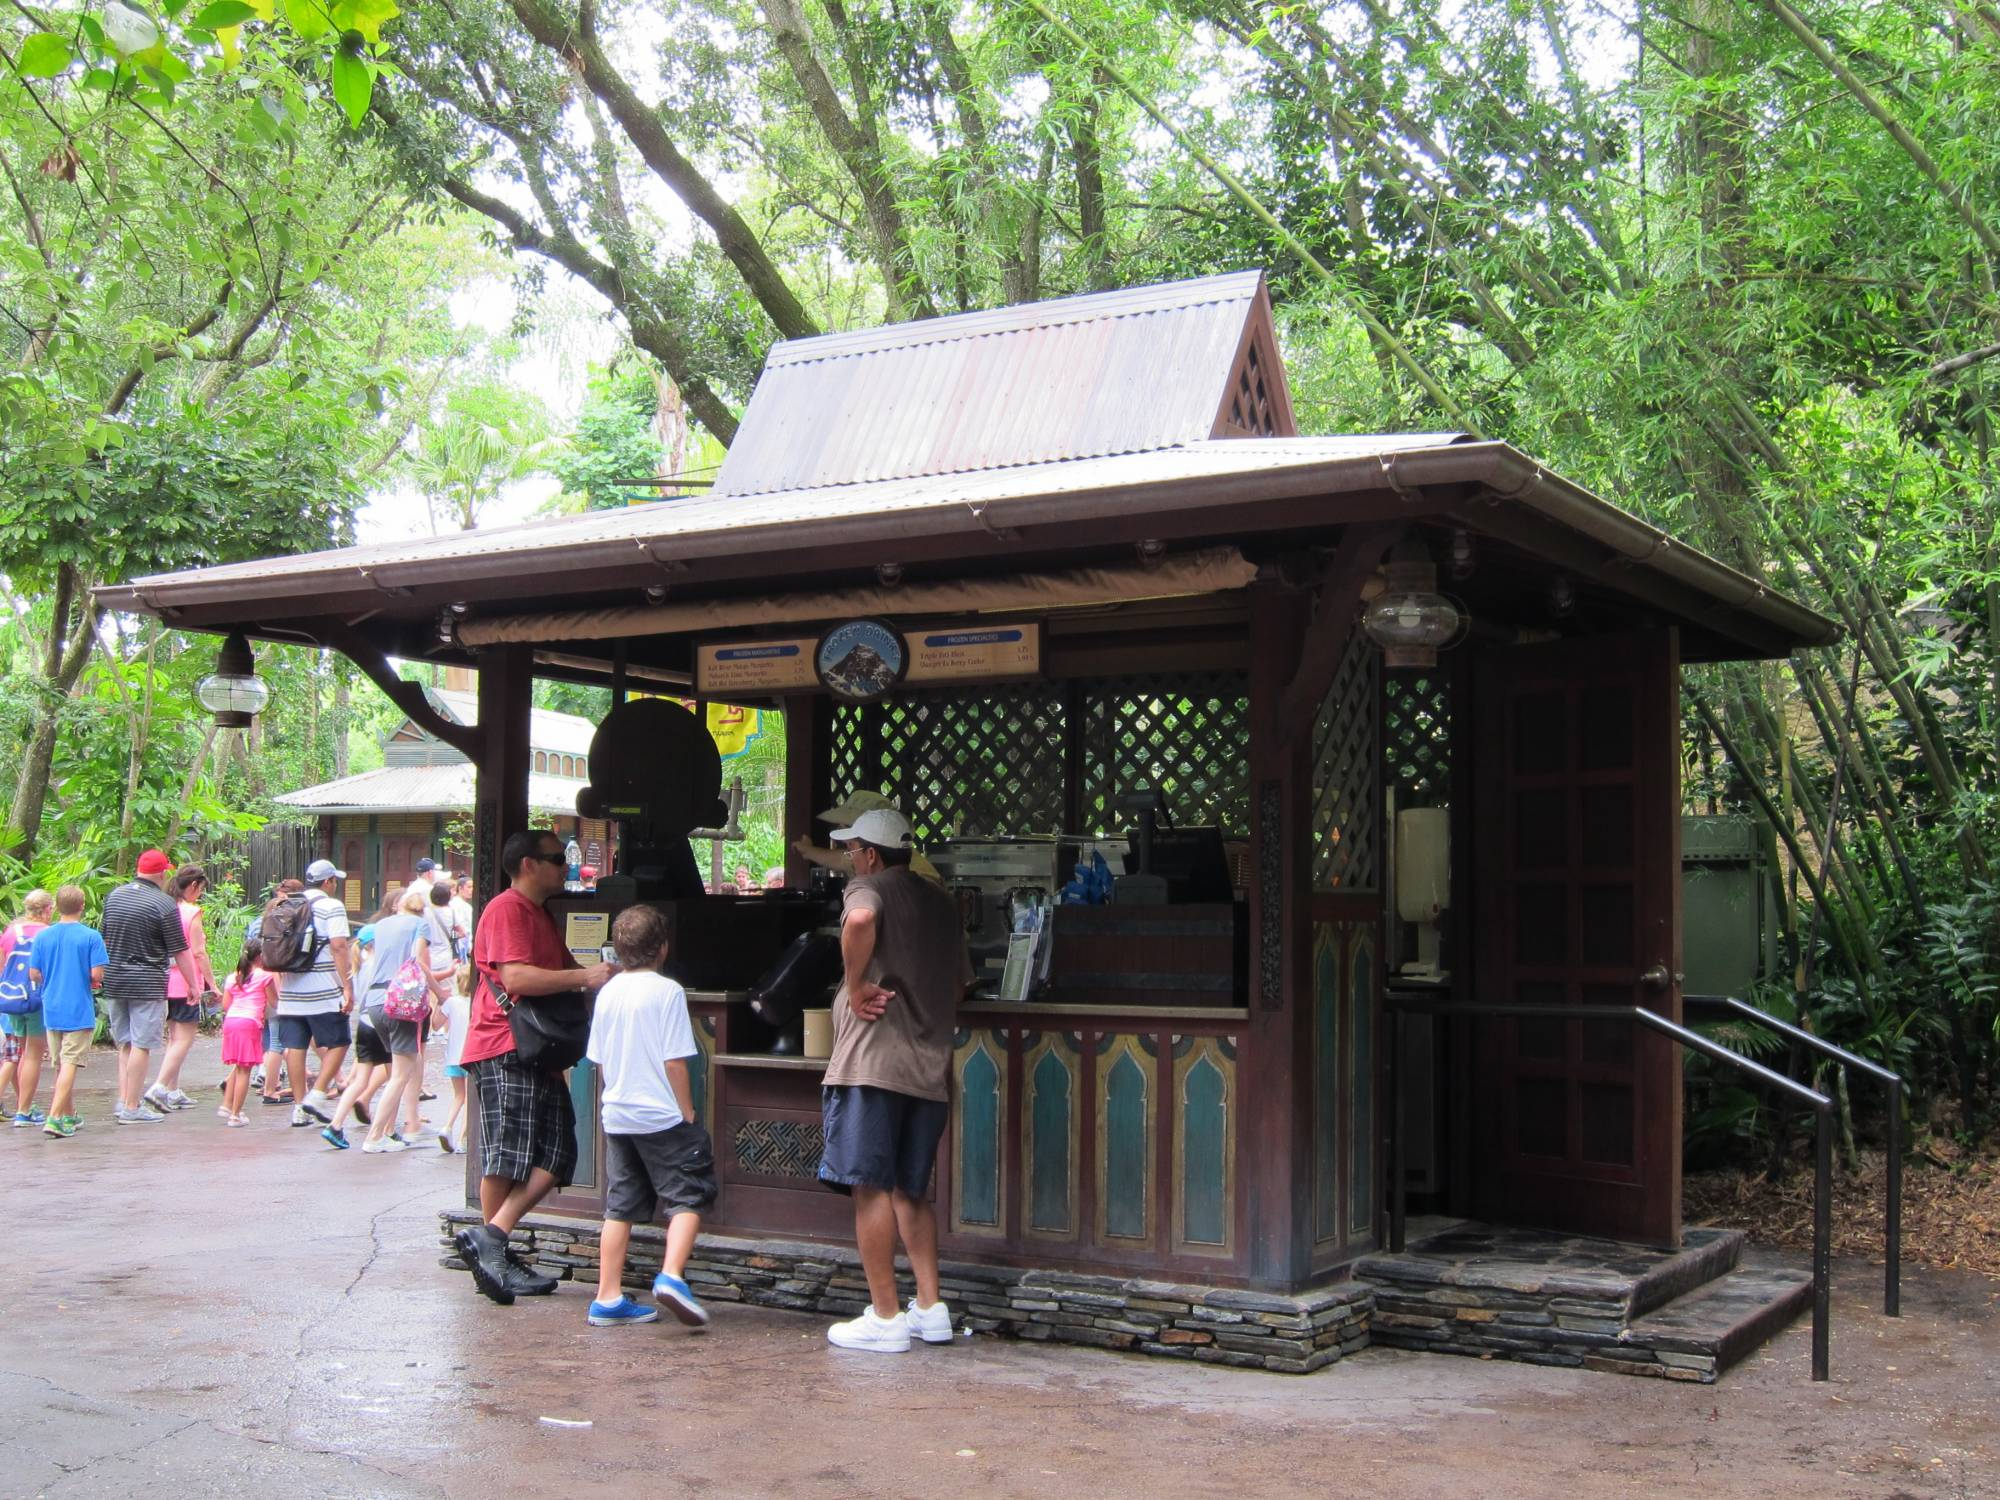 Enjoy a frosty adult beverage at Disney's Animal Kingdom | PassPorter.com